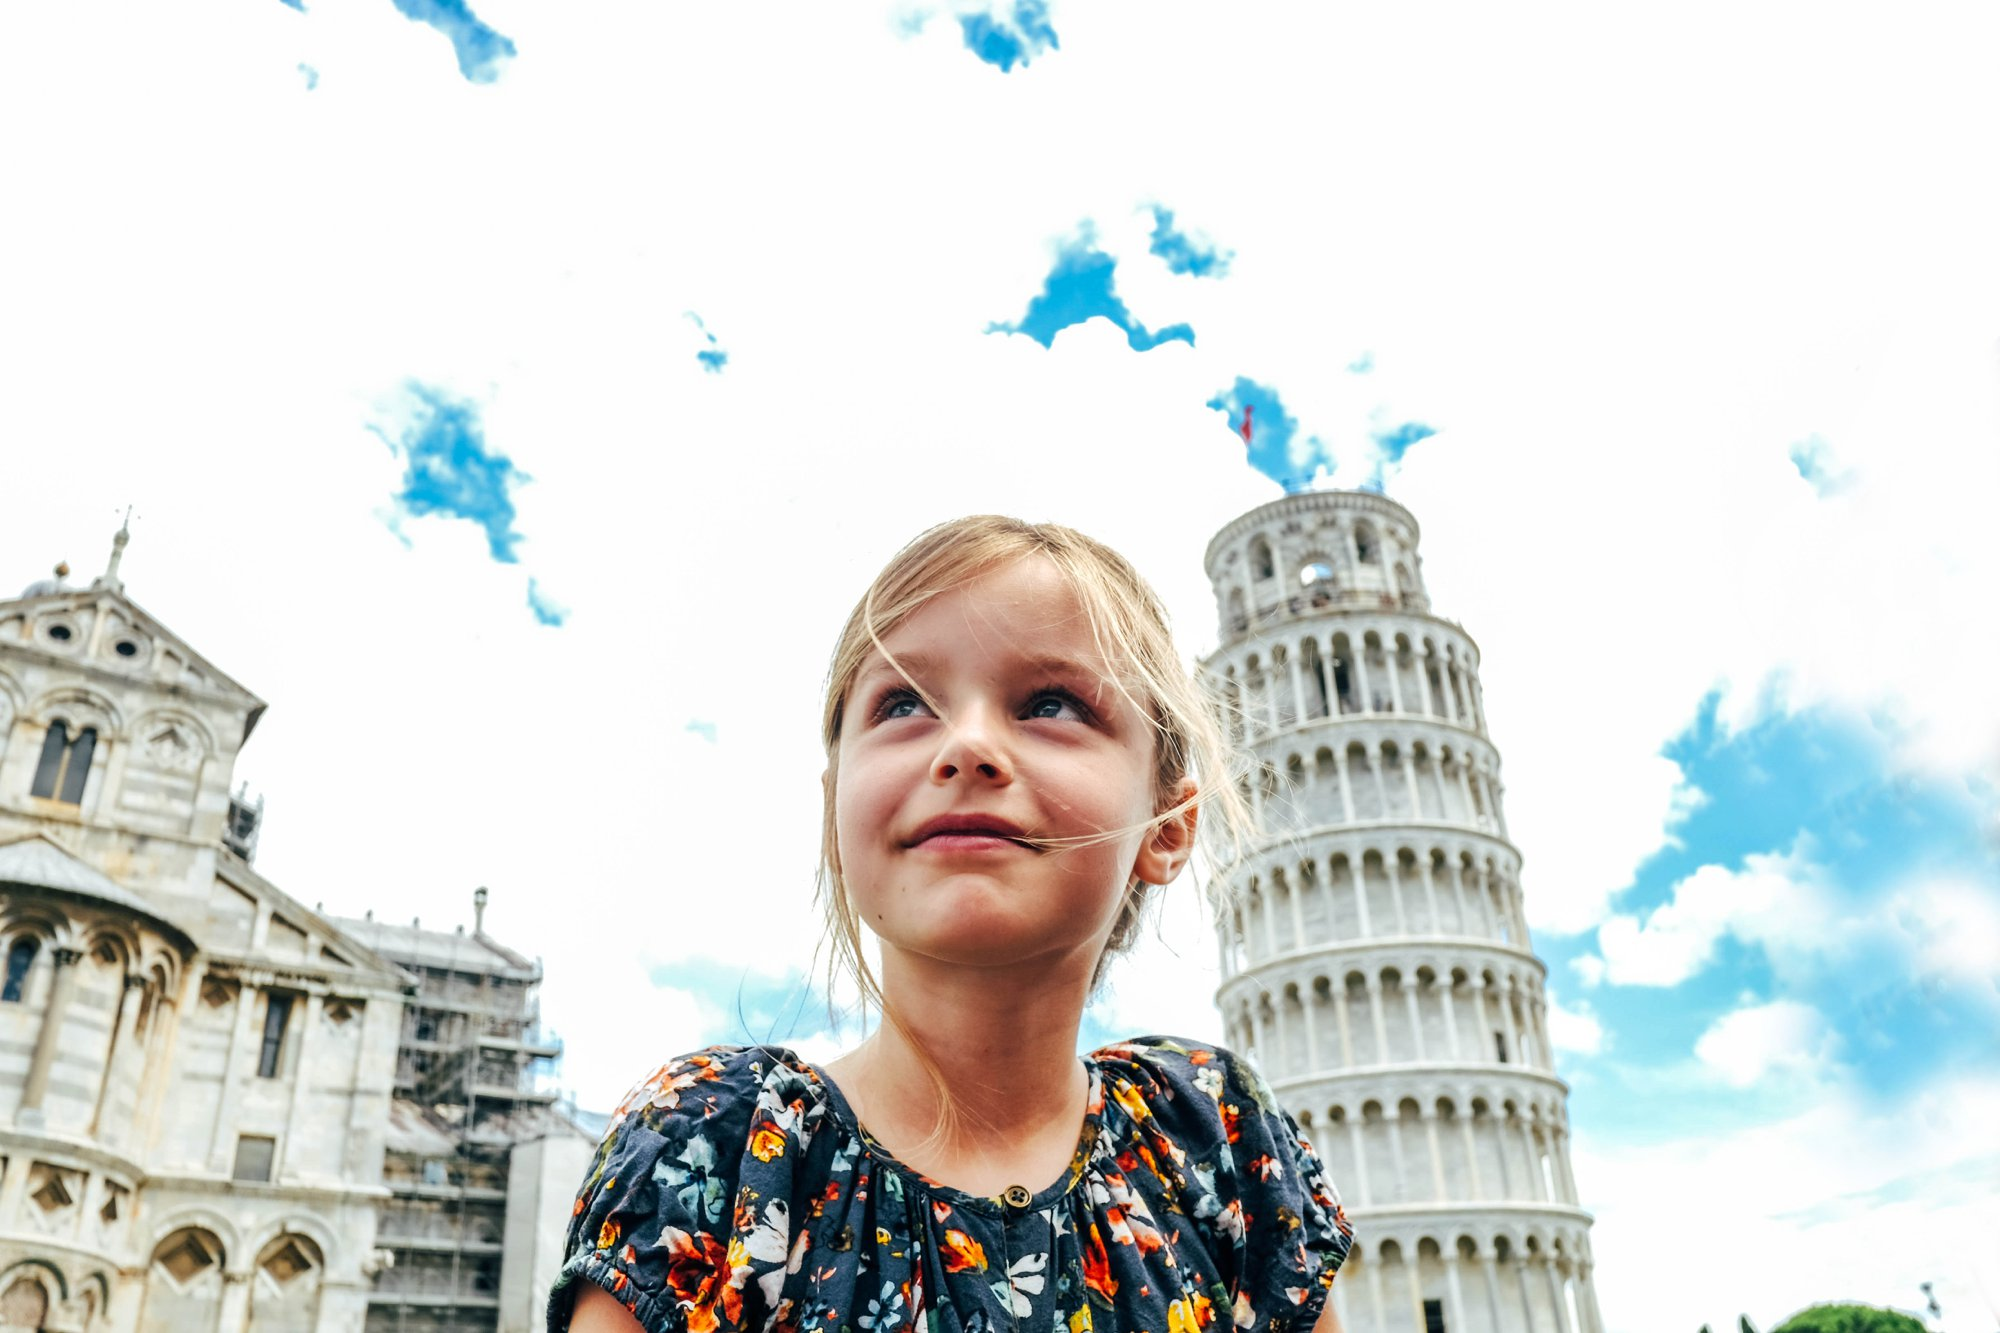 Little girl sits in front of Leaning Tower of Pisa Essex Documentary Wedding Travel Photographer